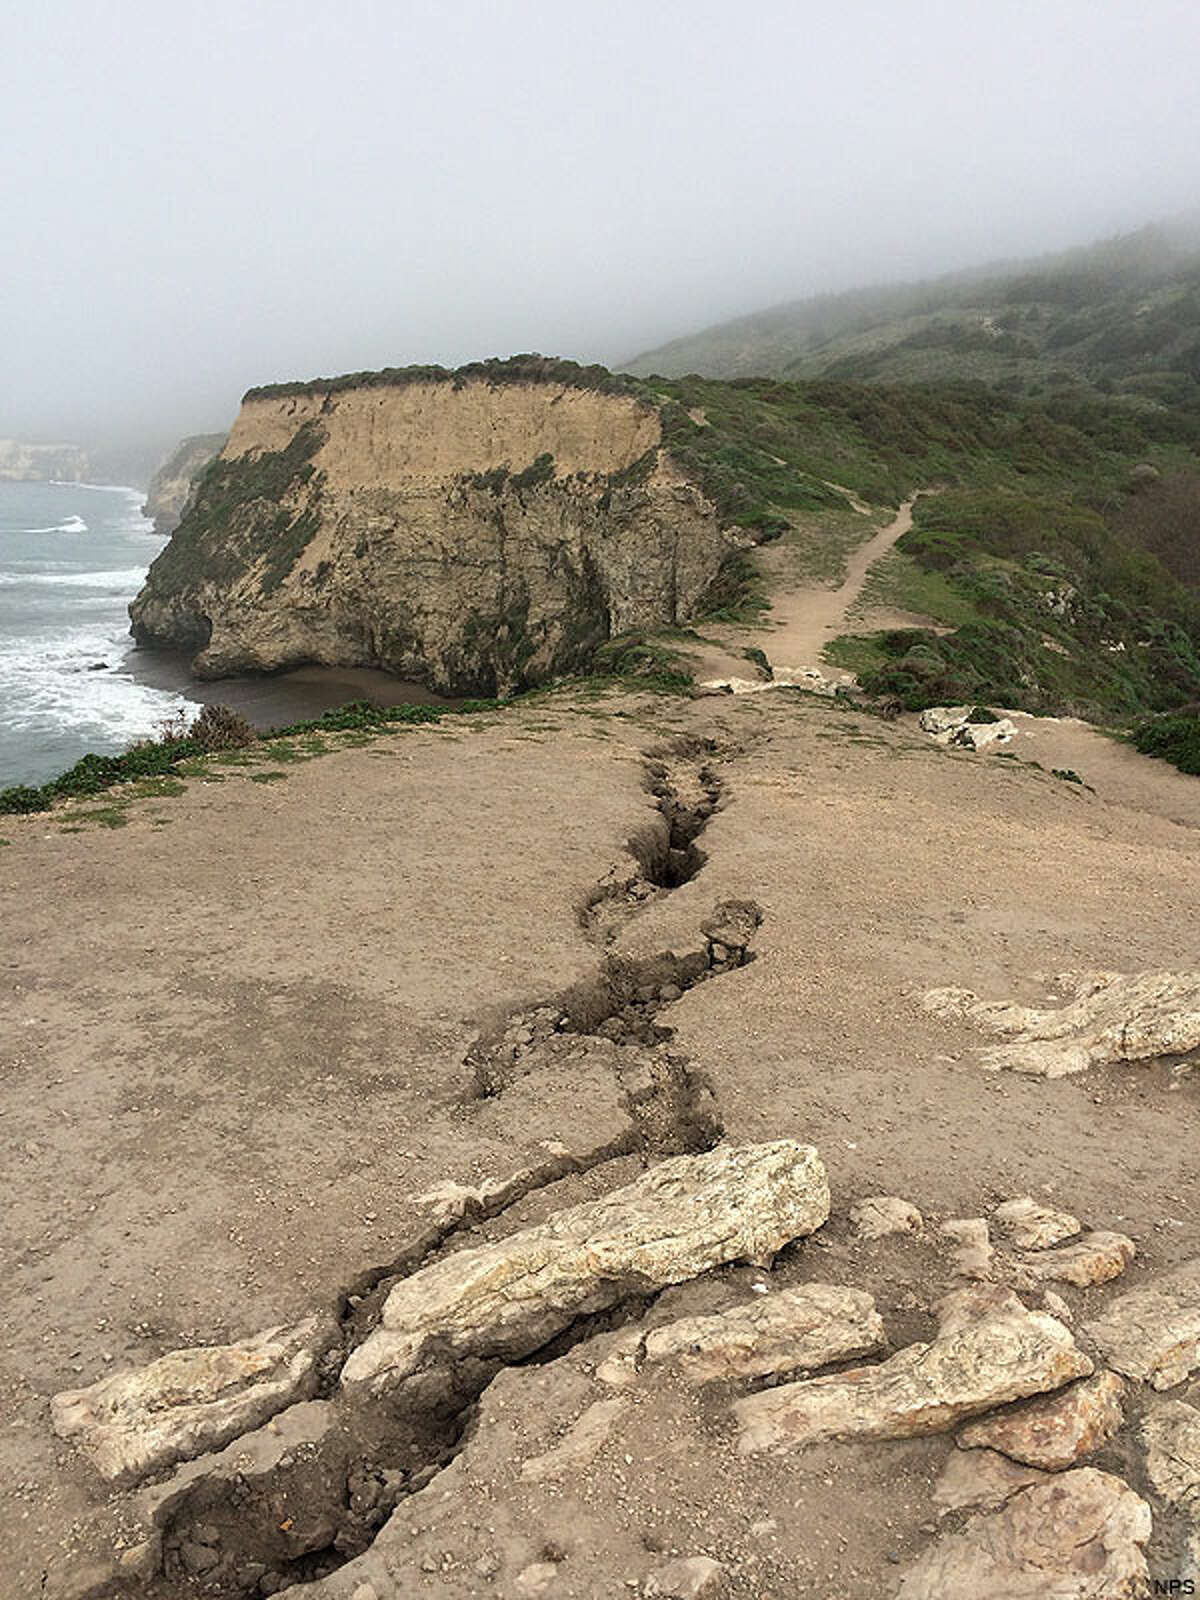 Fissures are shown in the area of Arch Rock at Point Reyes National Seashore.